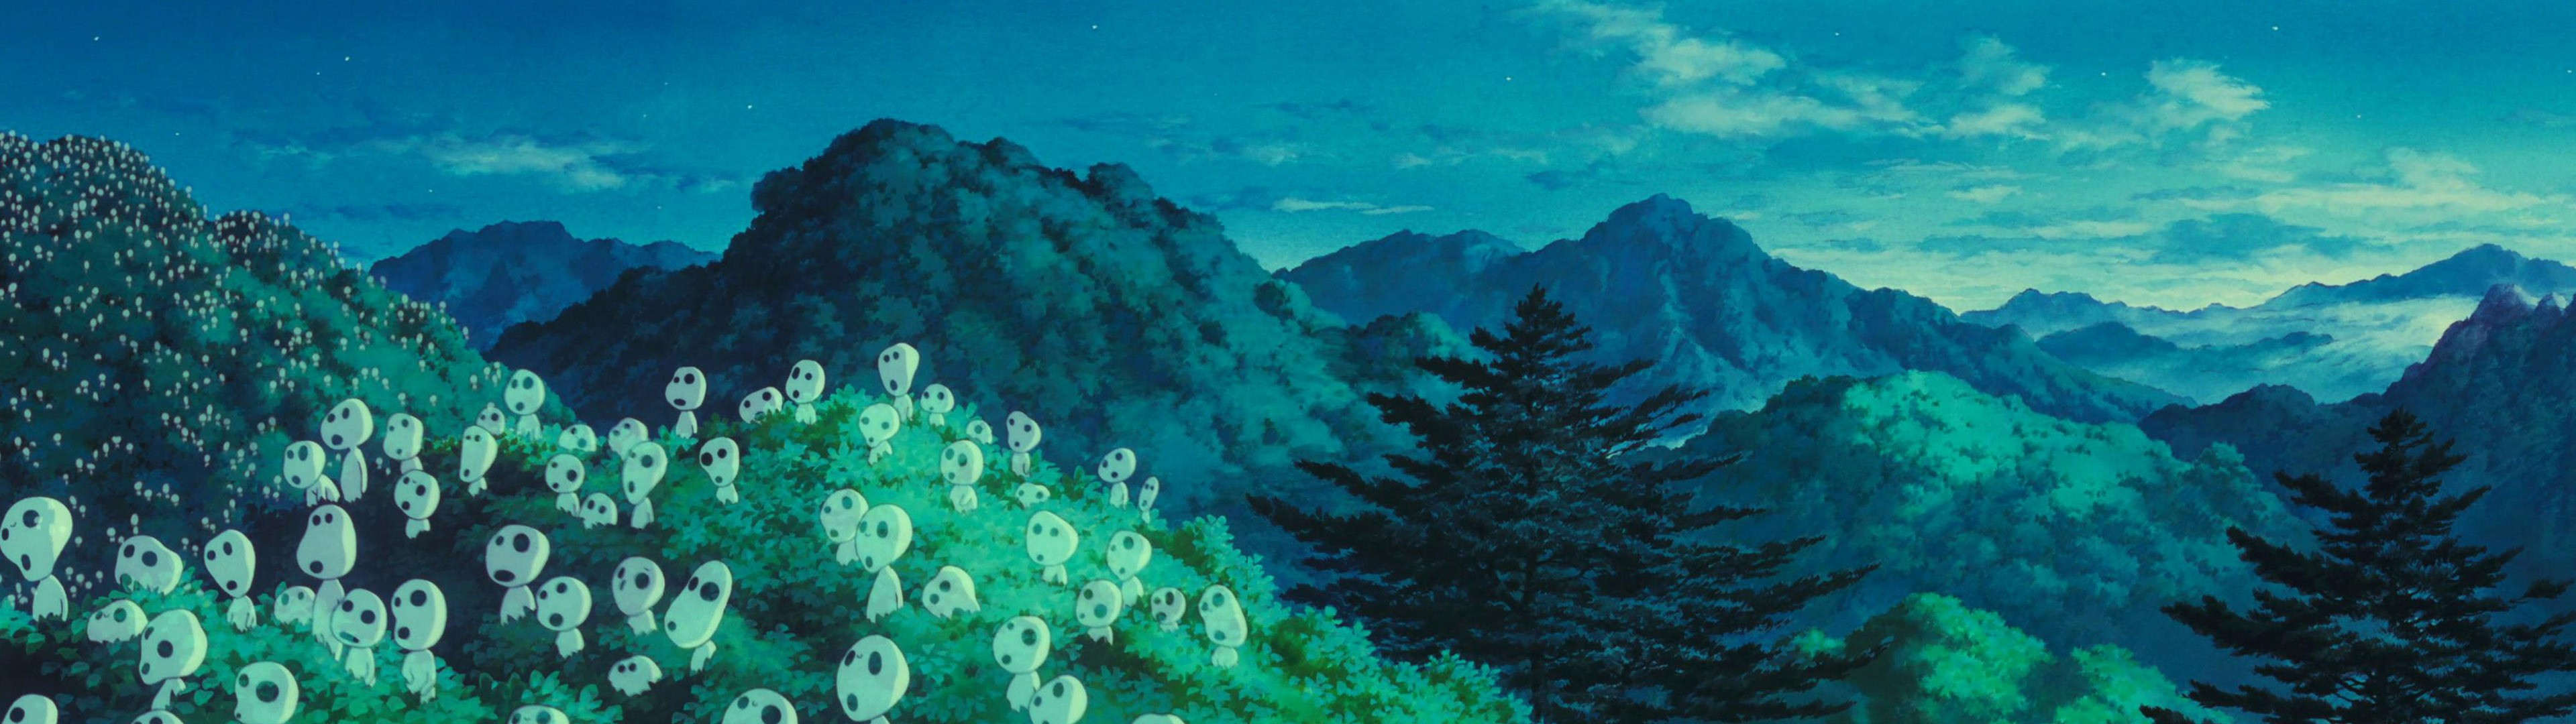 Miyazaki Wallpaper 1 Download Free Cool Full HD Backgrounds For